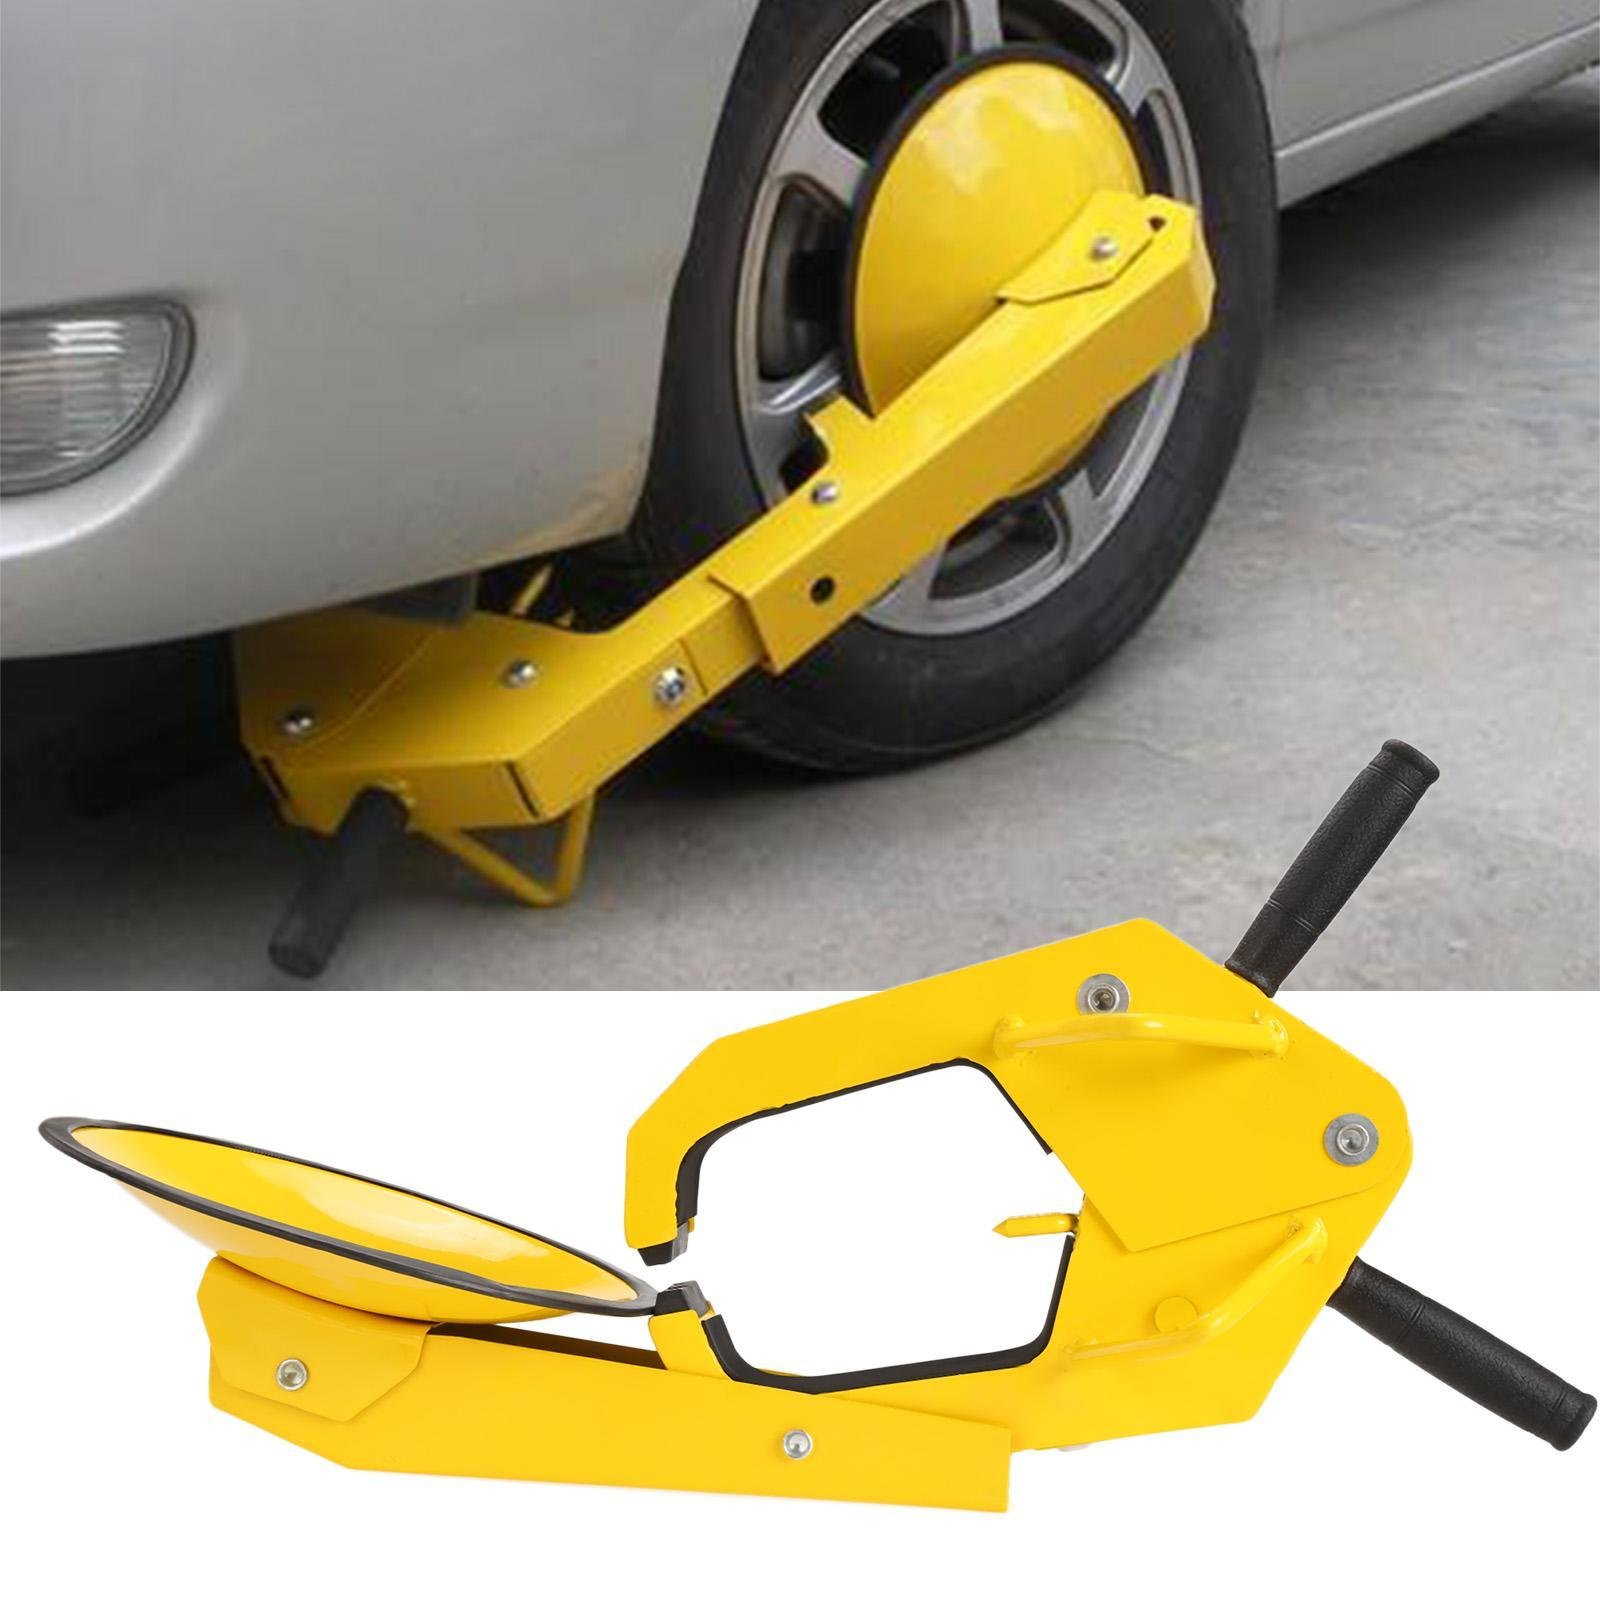 Trailer Tire Lock Clamp Boot Anti-Theft Car Tire Lock with 2 Keys